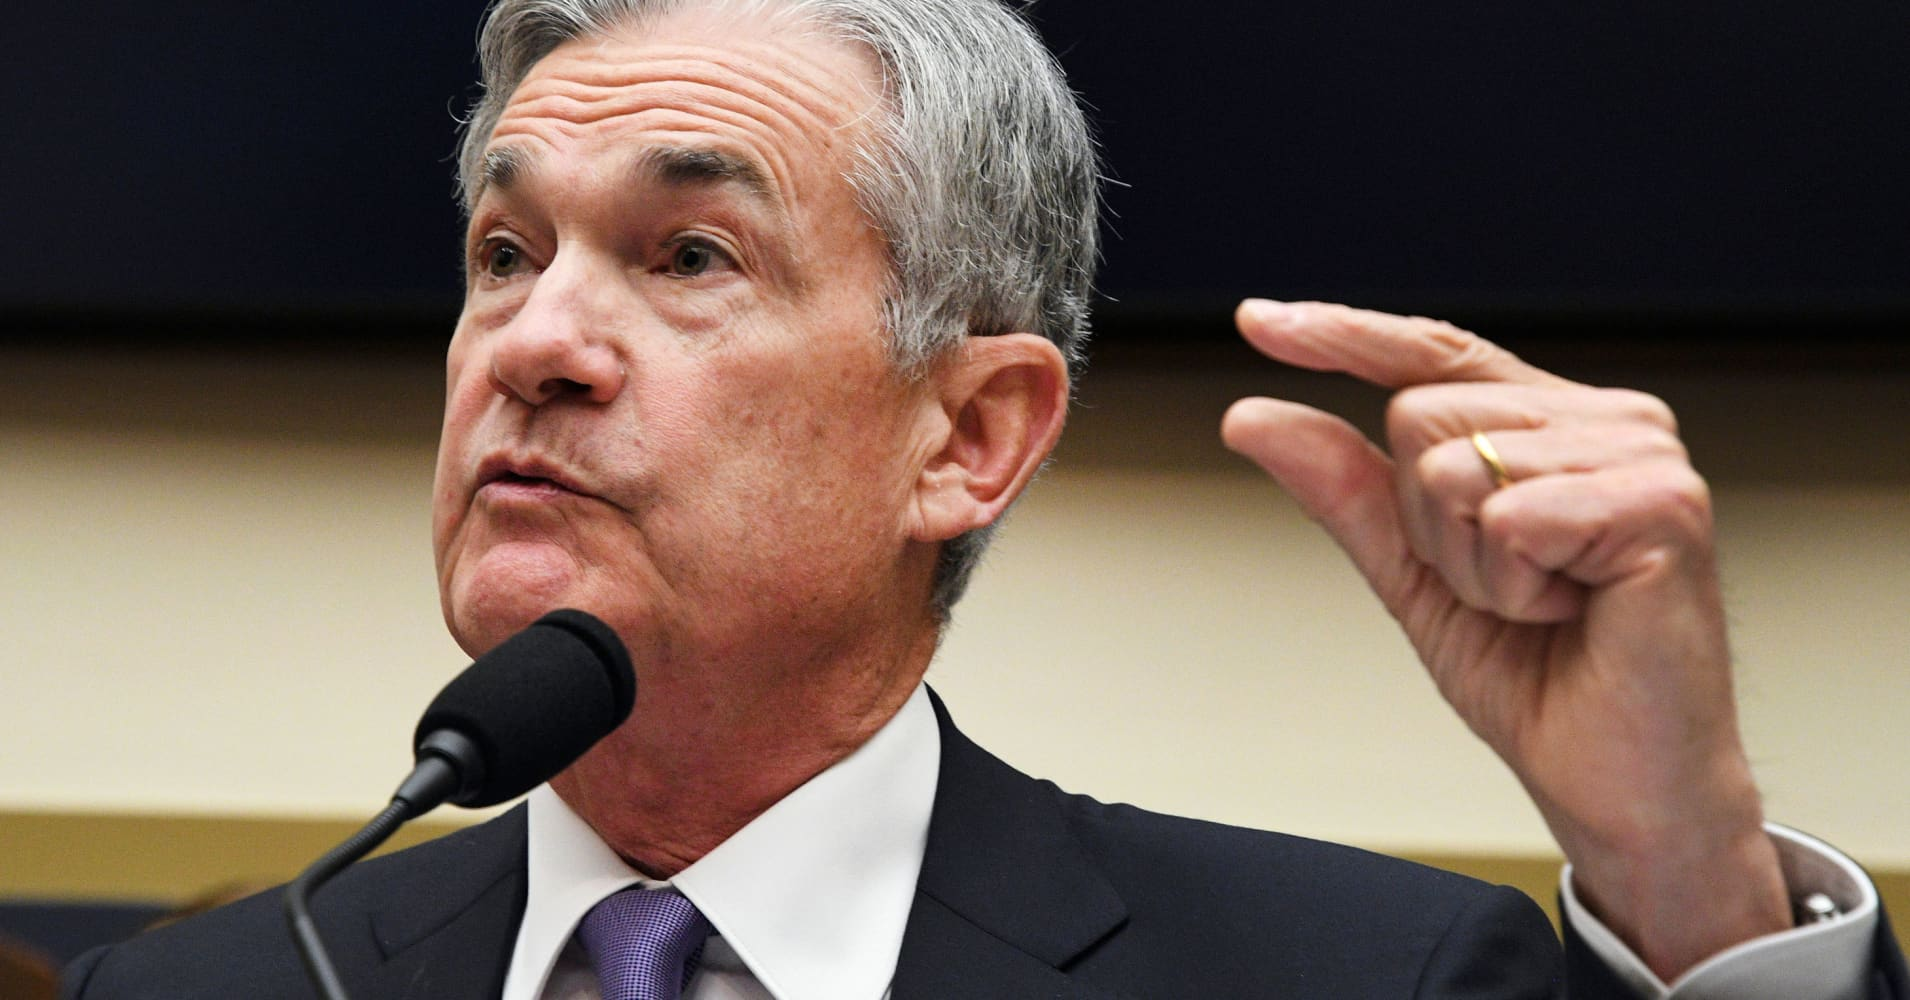 Congress asked the Fed chief about marijuana banking: 'It would be nice to have clarity'